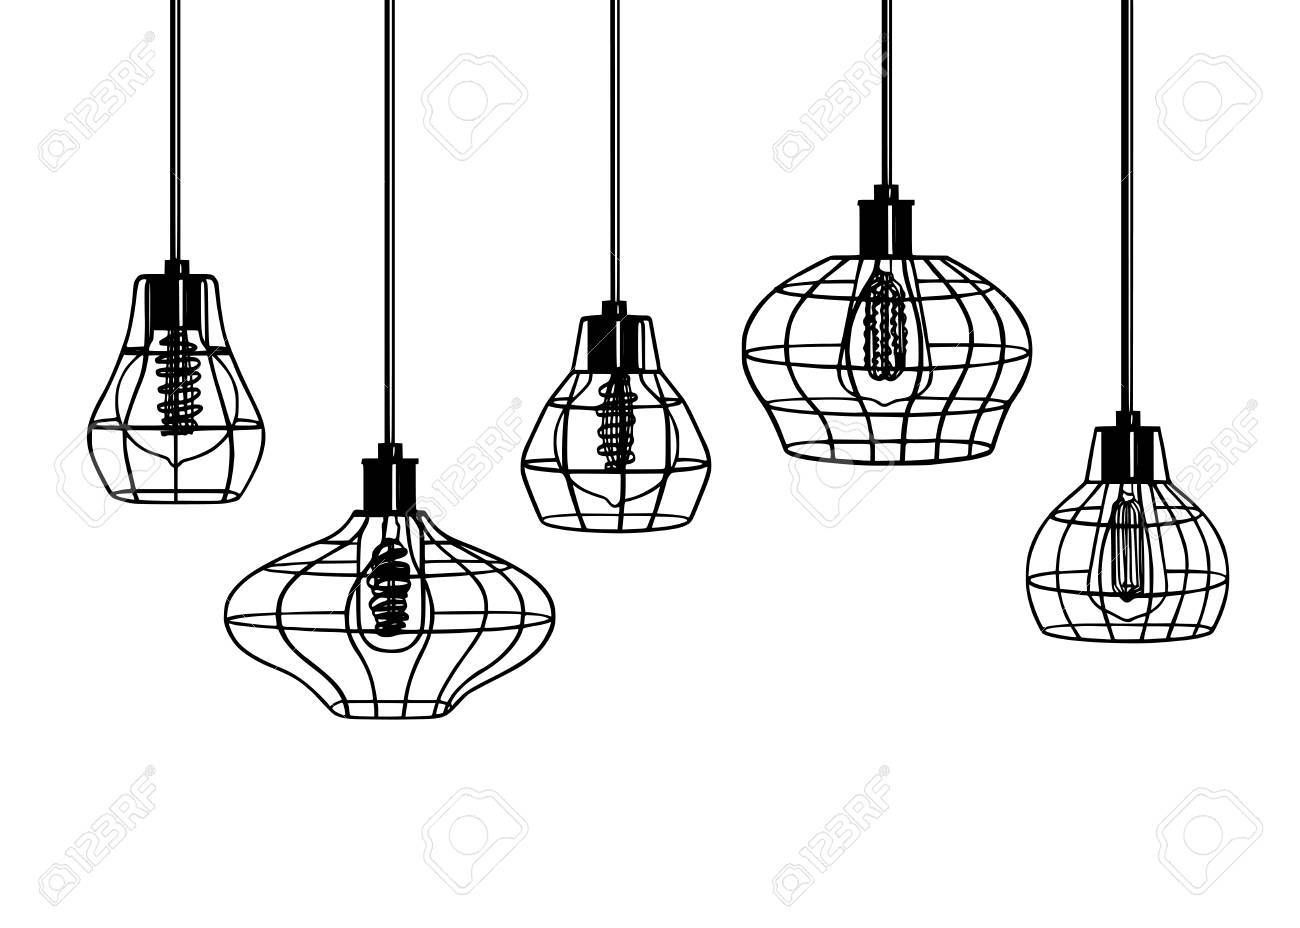 Industrial Style Retro Pendant Lights Set Of Vintage Pendant Lamps Hanging Lamp With Edison Bulb Black Retro Pendant Lights Vintage Pendant Lamp Lamp Decor